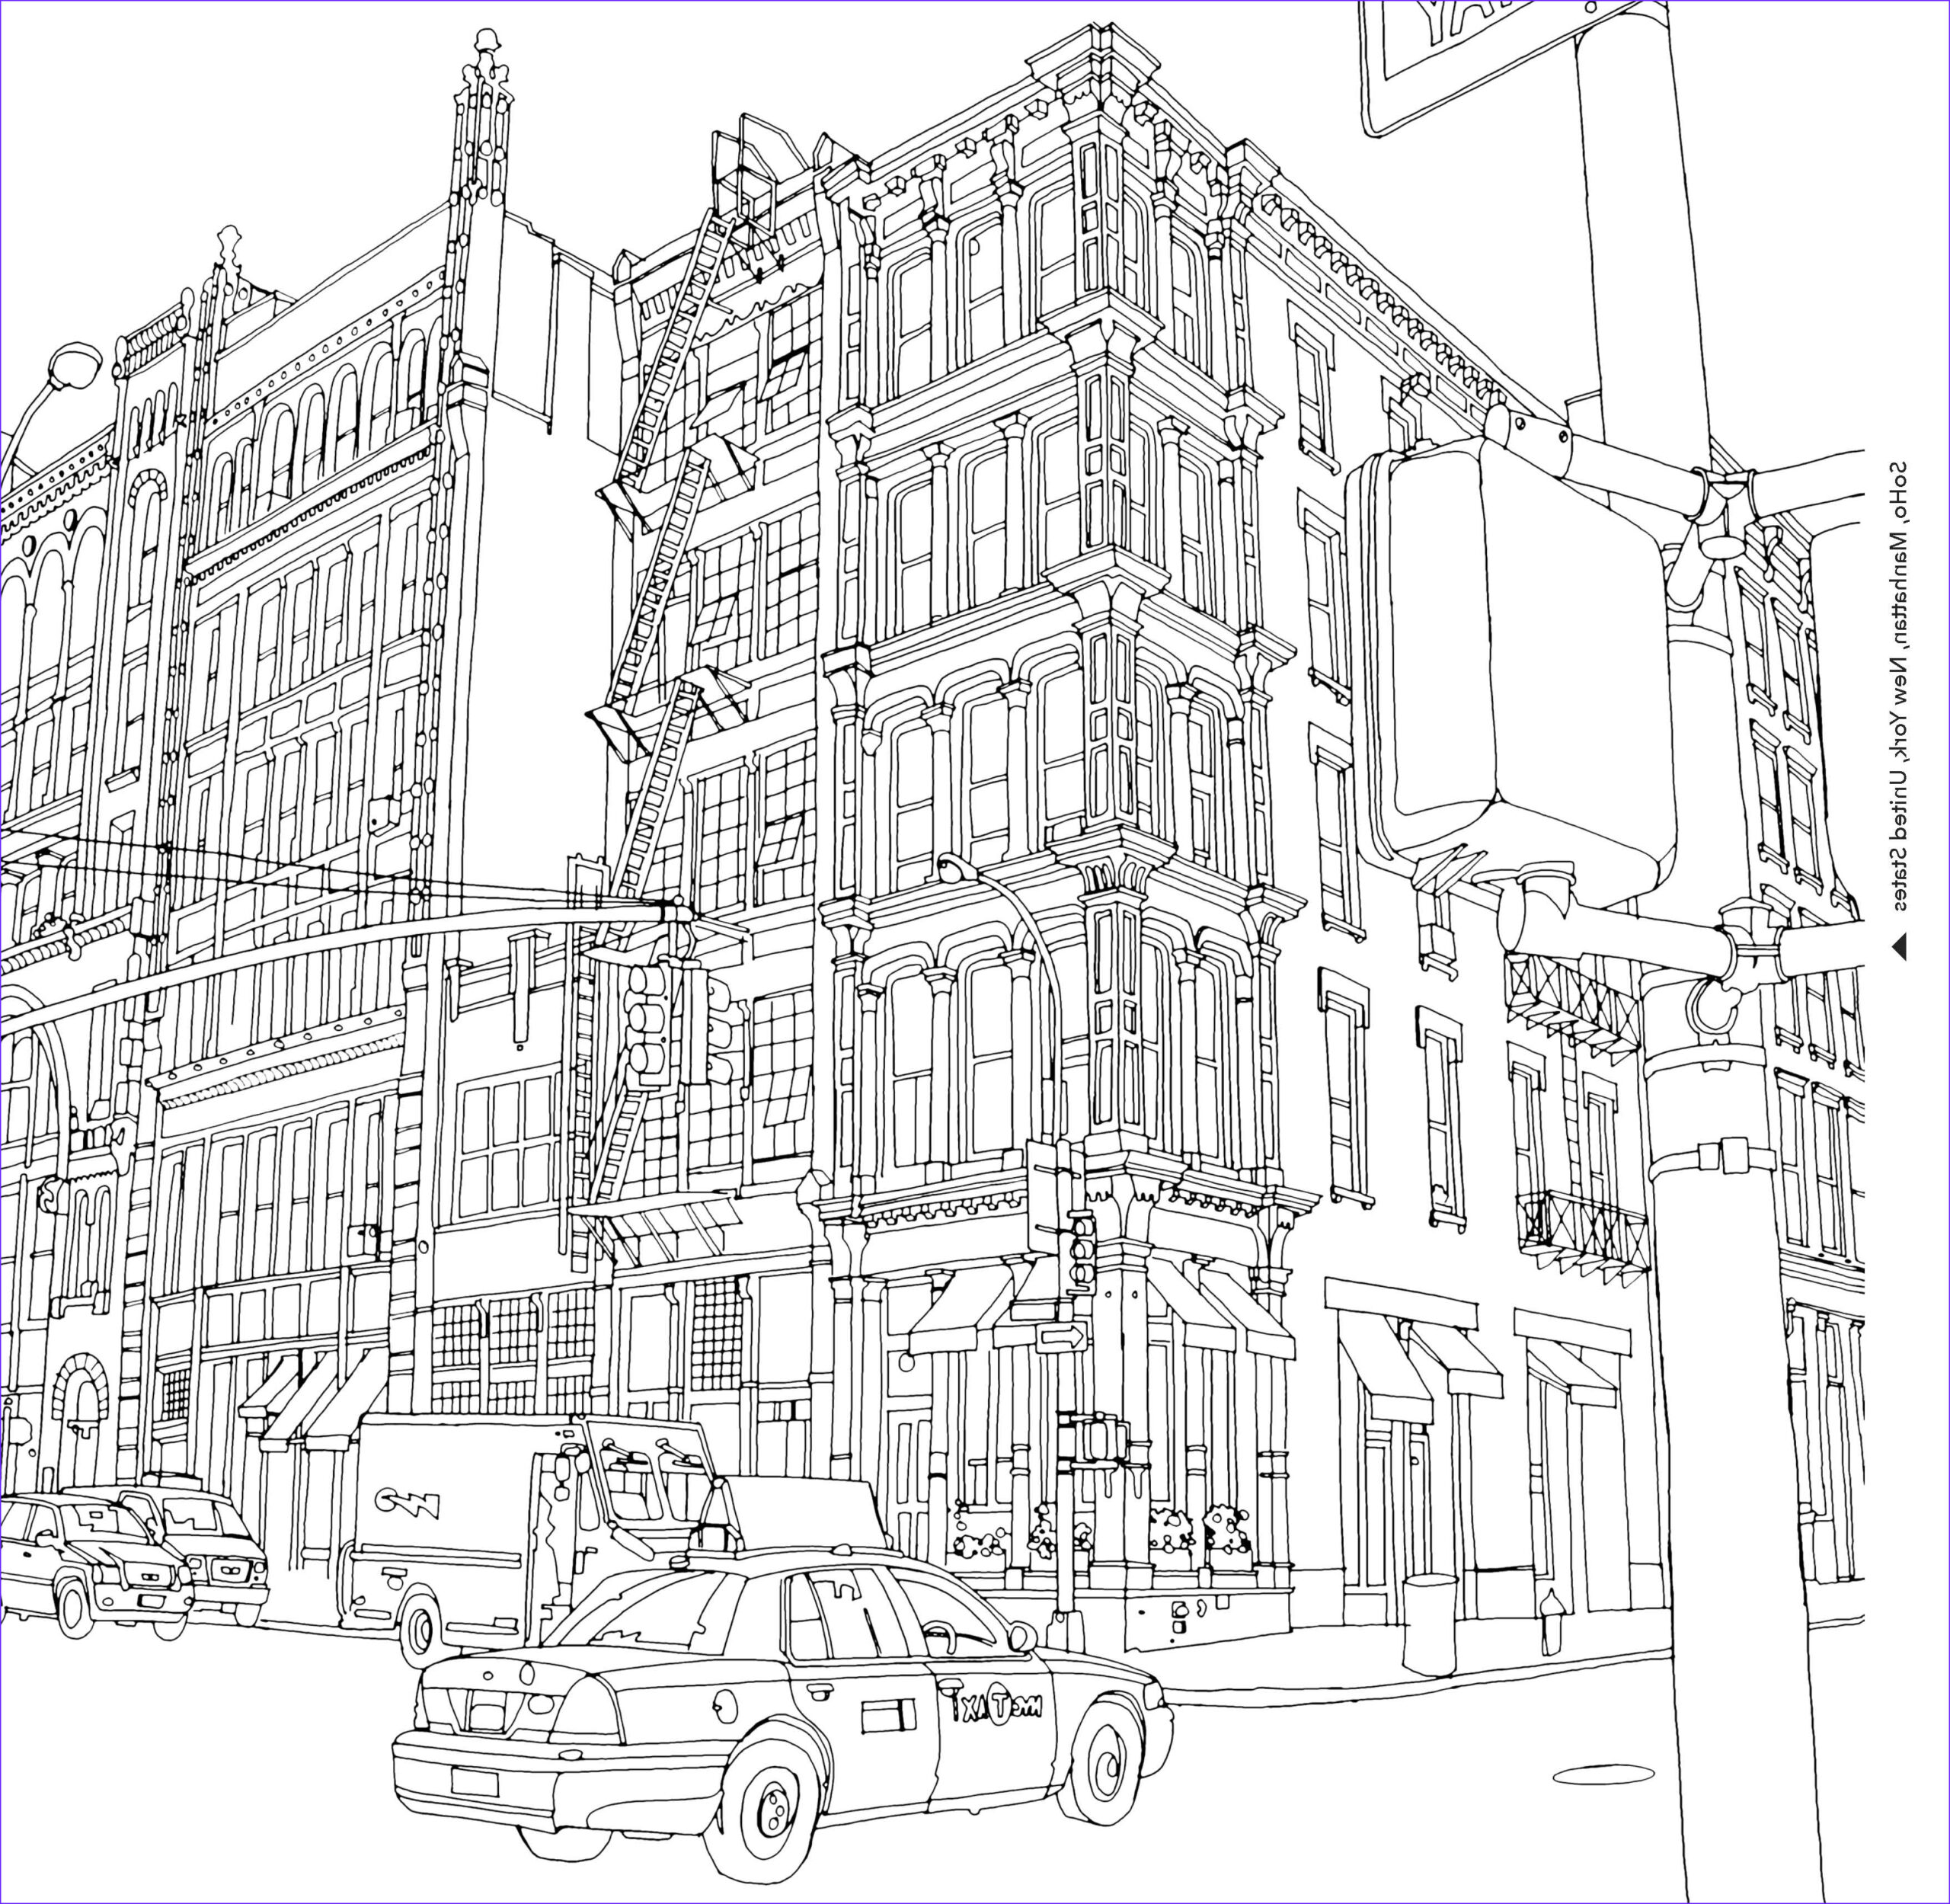 the surprising popularity of an urban themed coloring book